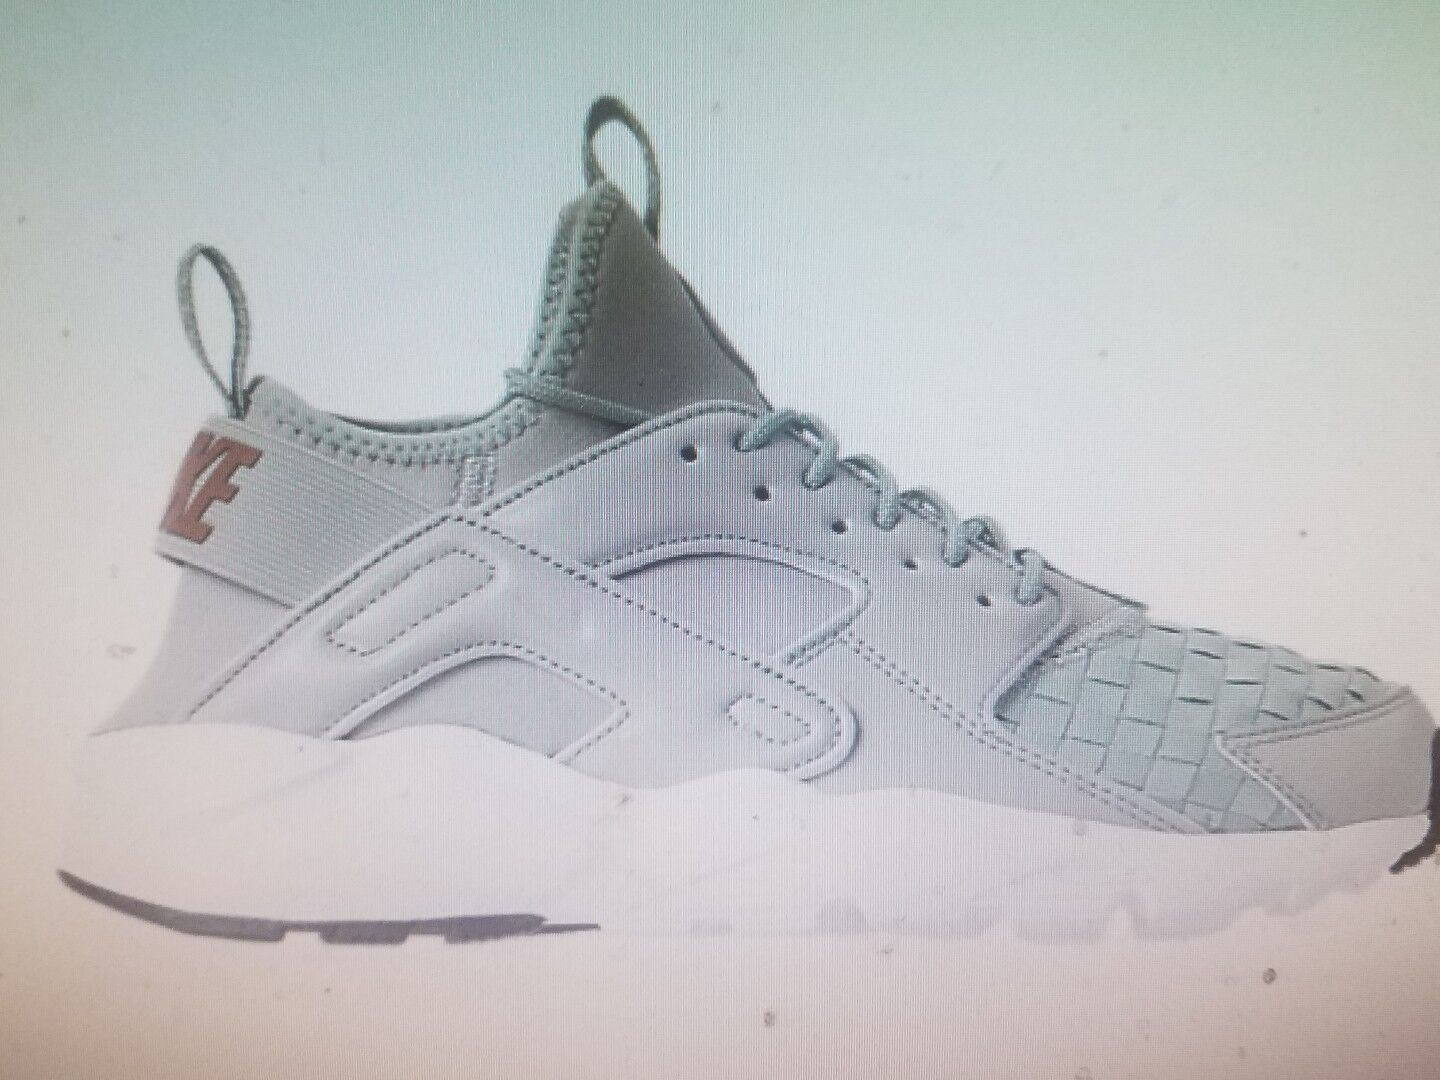 Nike Air Huarache Run Ultra Prm 875841 007 Mens Sz 10.5 NSW Running Air Max WOW